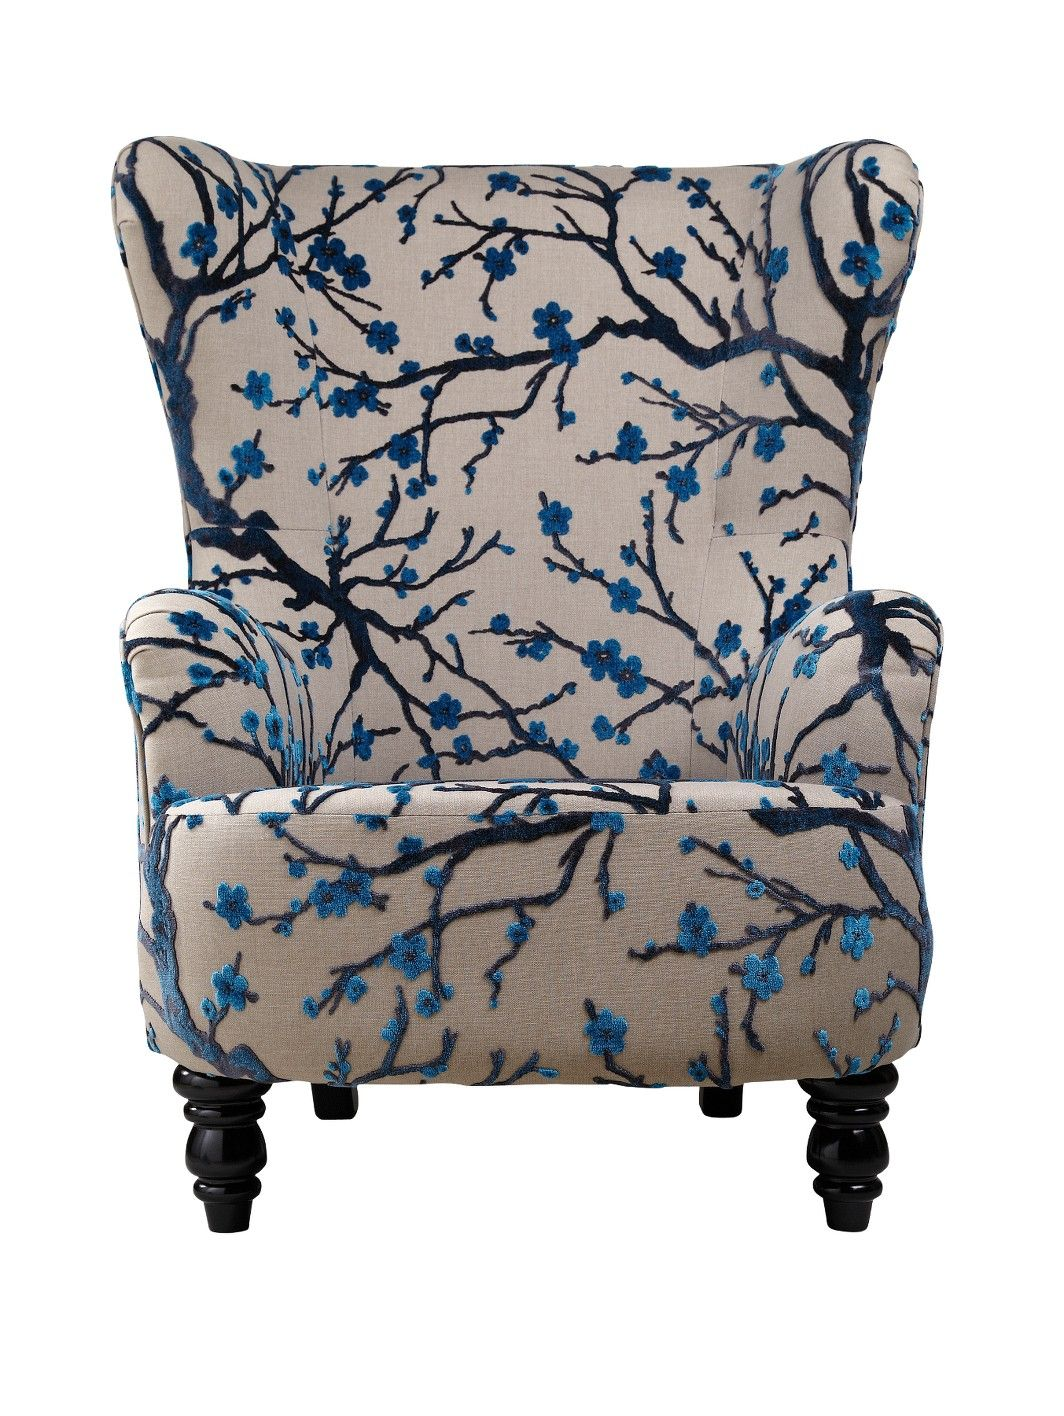 Fearne Cotton Melrose Blossom Accent Chair Very Co Uk